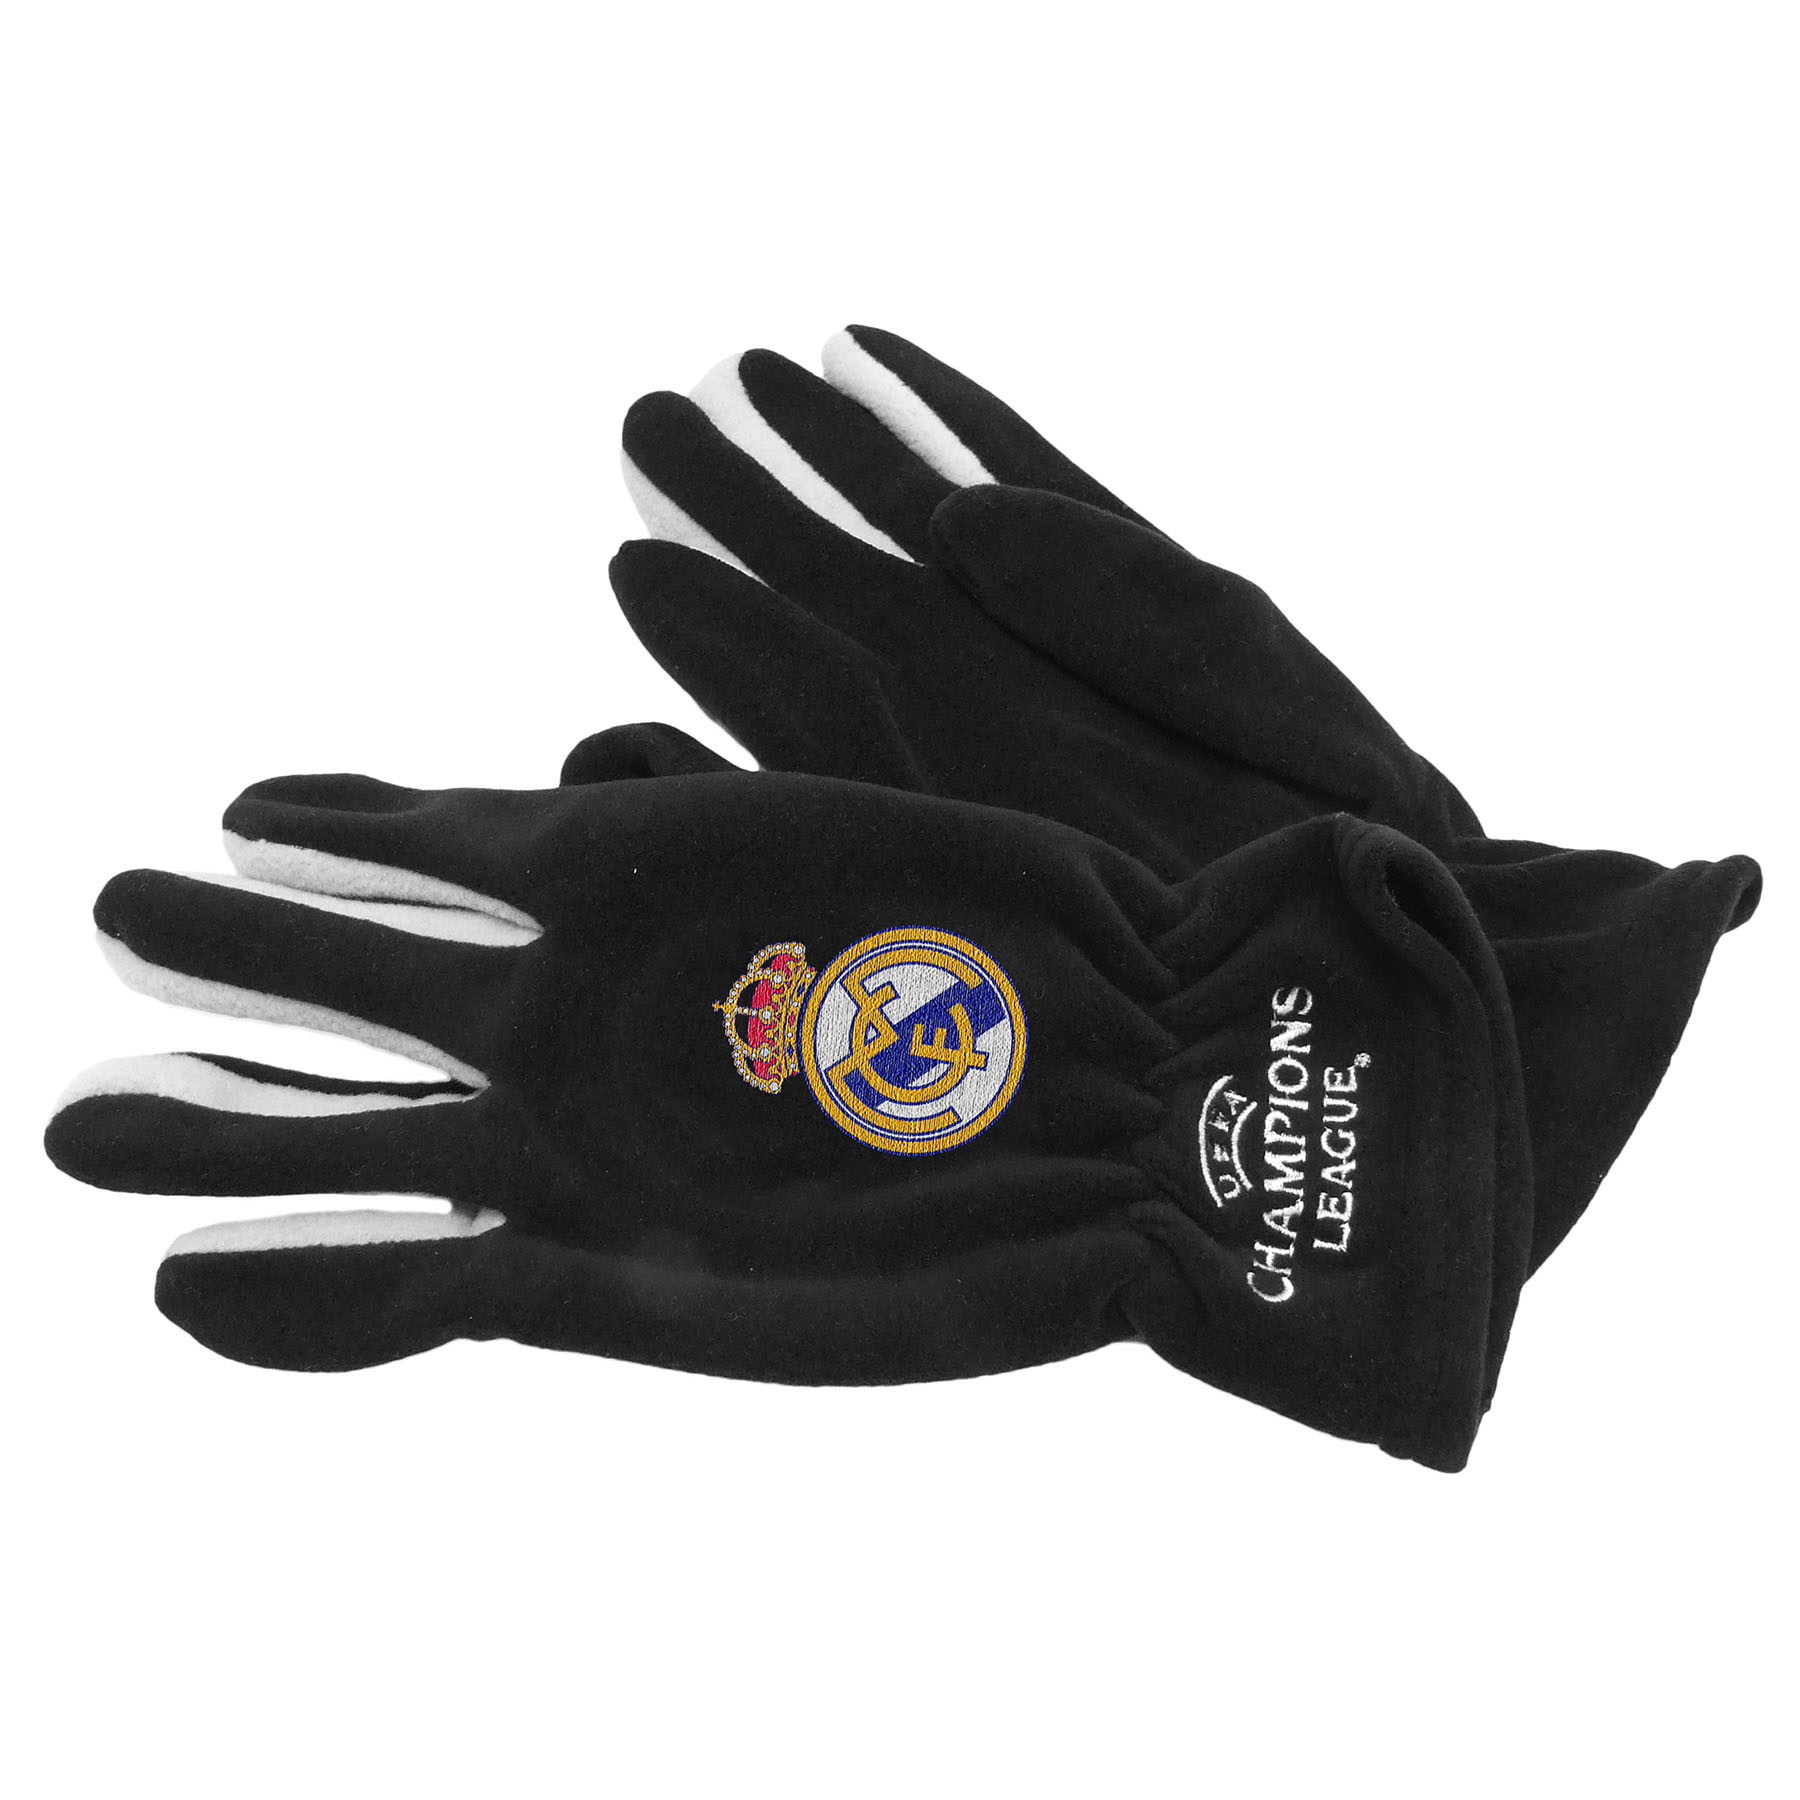 Real Madrid UEFA Champions League Fleece Gloves - Black - Adult